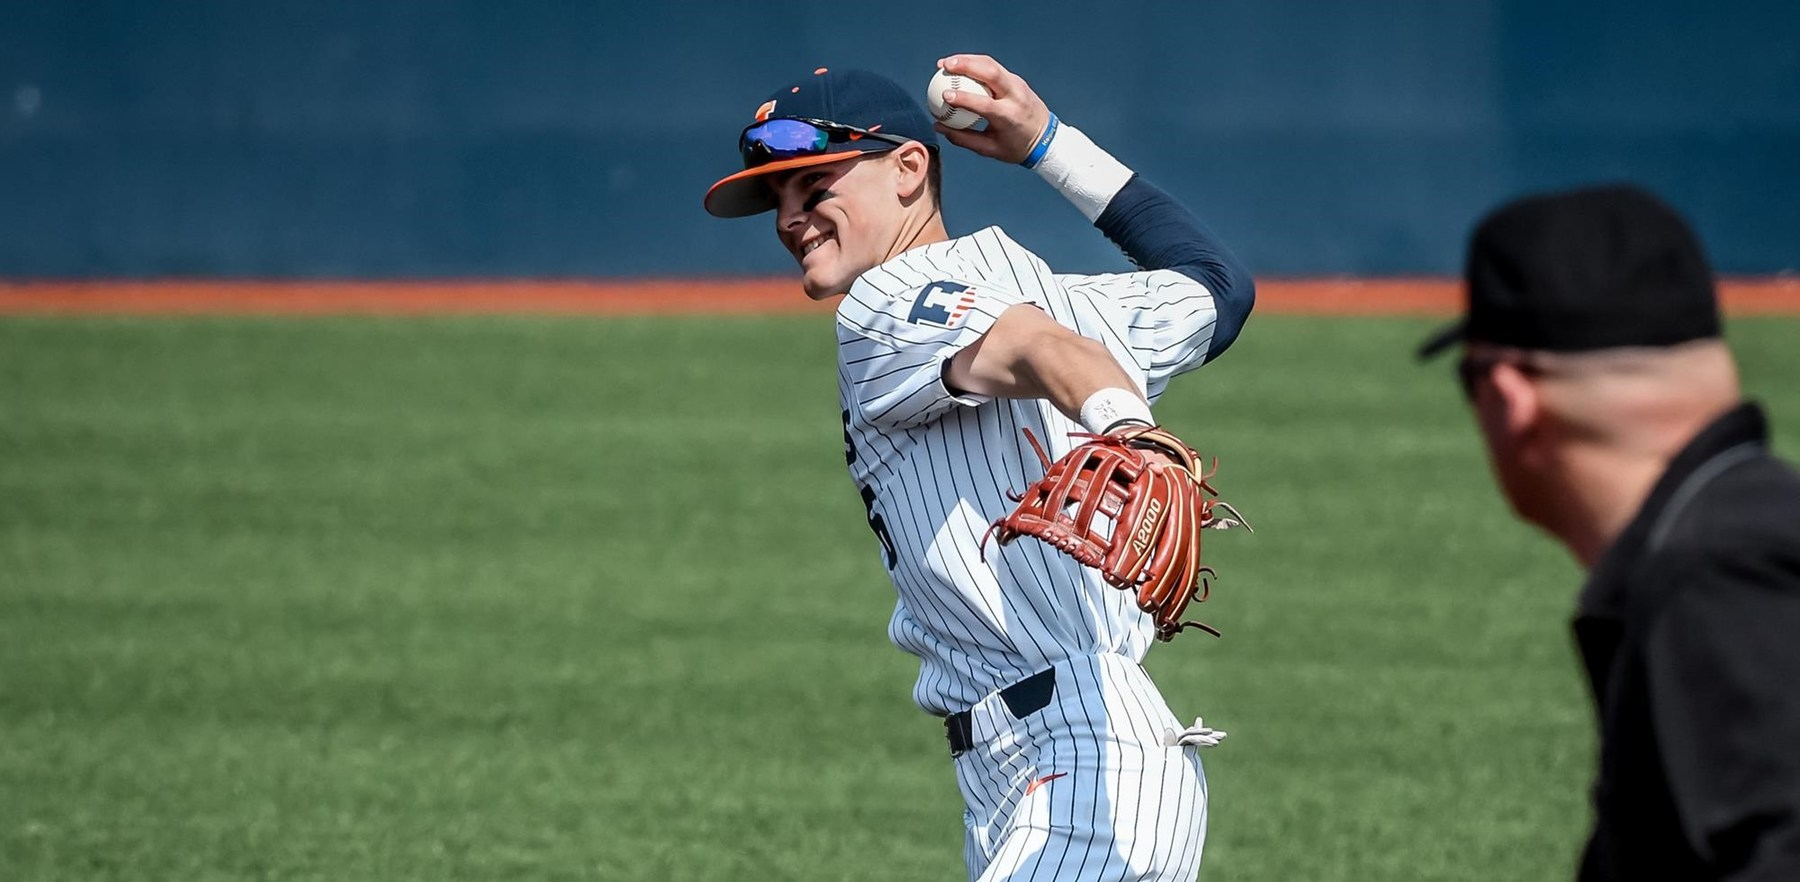 smiling Illini baseball player throws the ball as an umpire watches